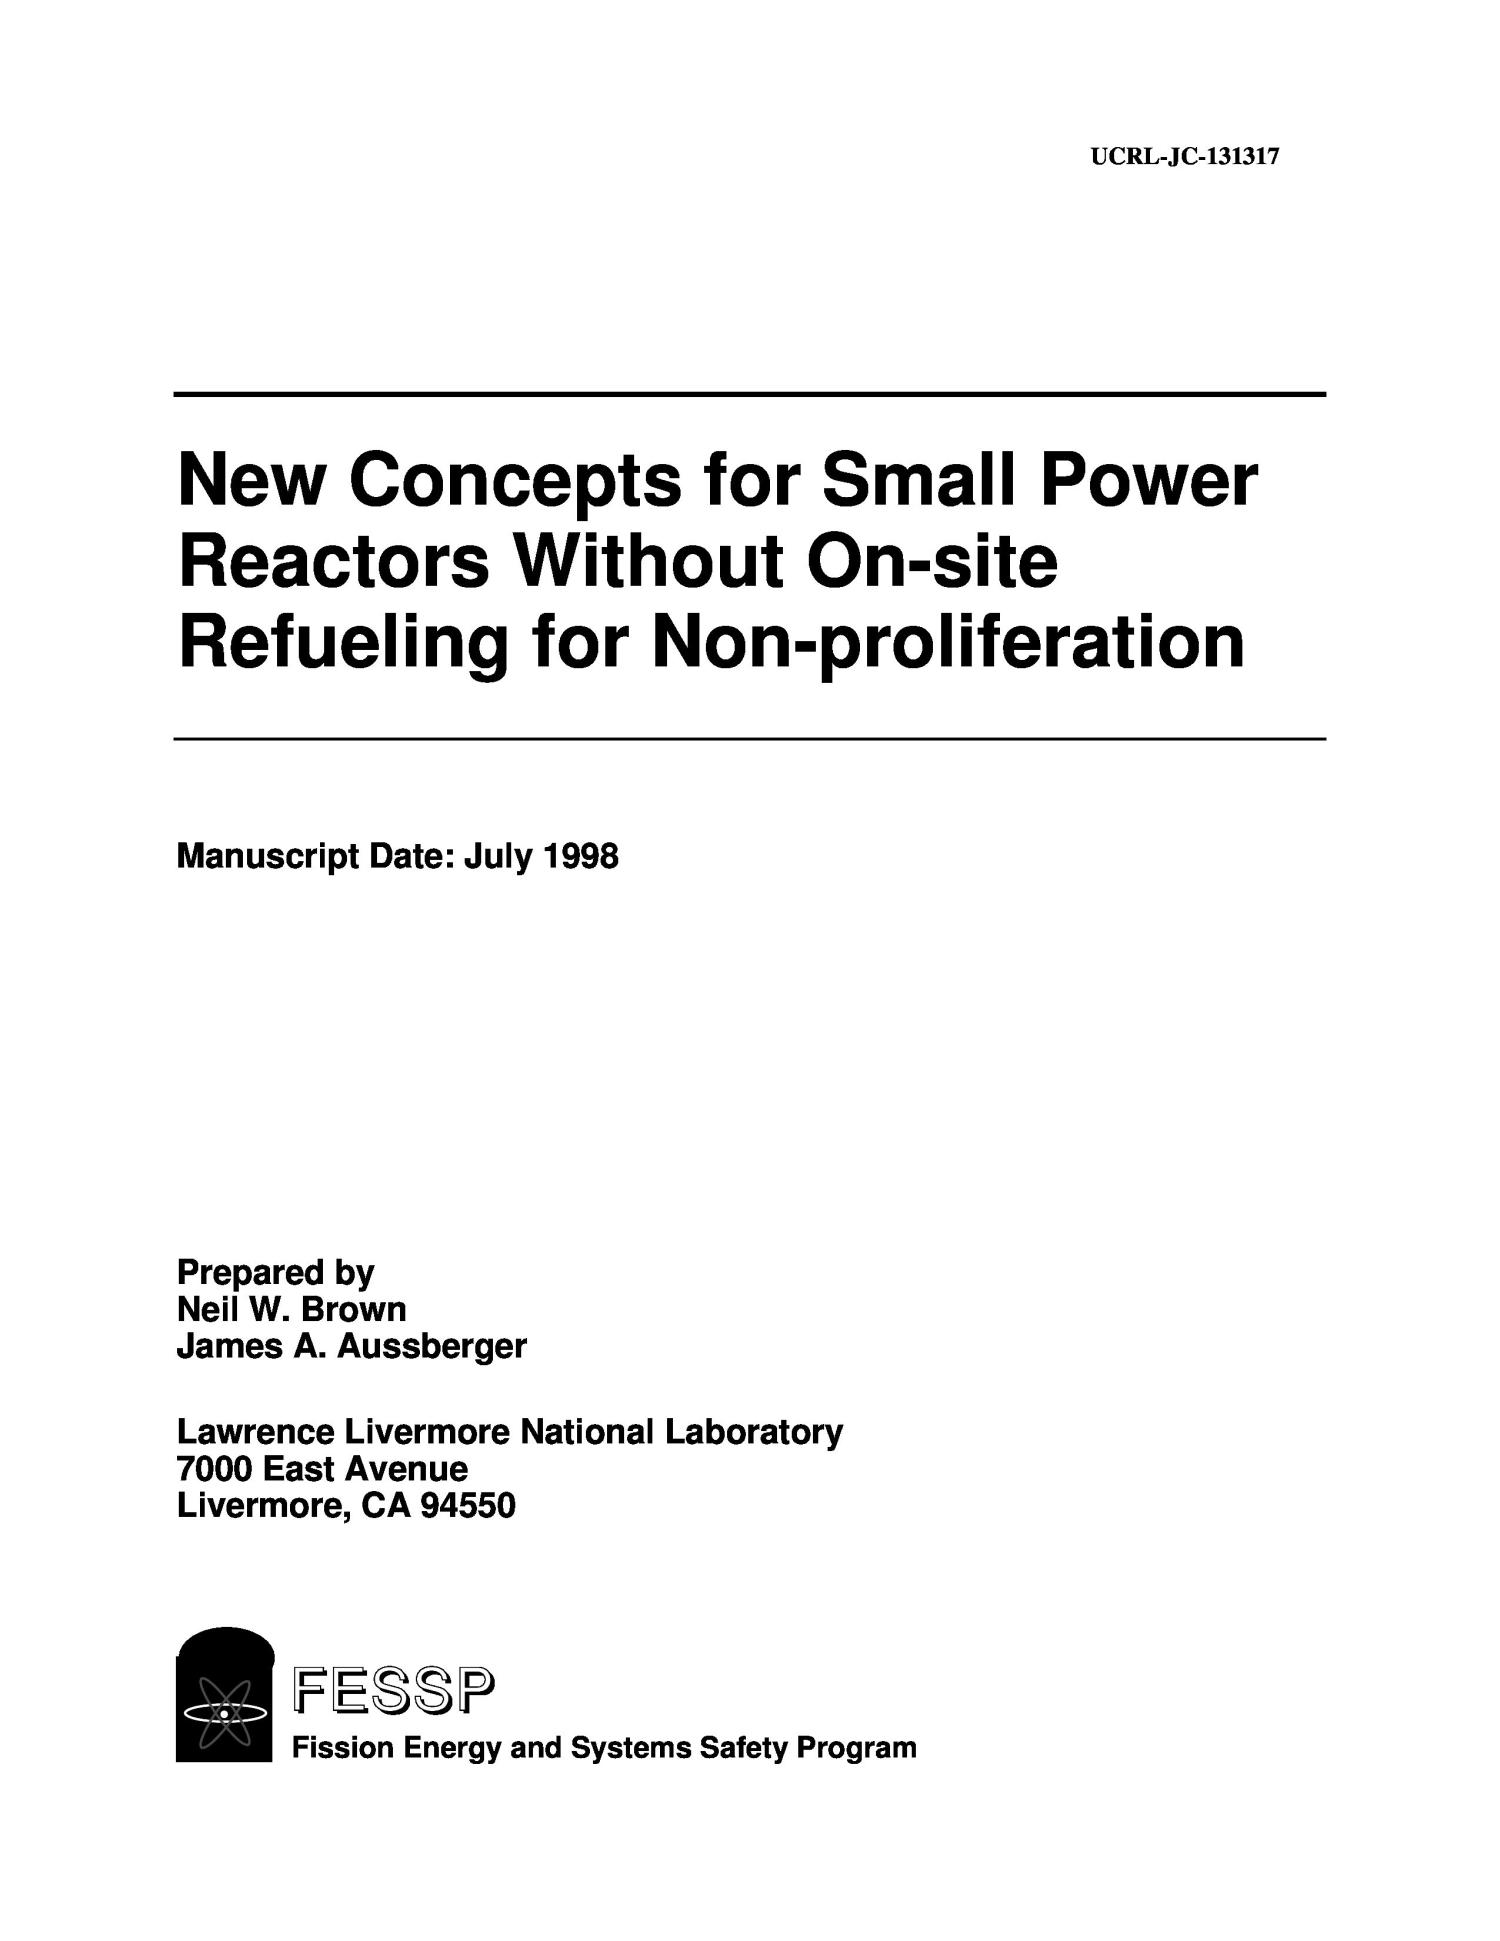 New concept of small power reactor without on-site refueling for non-proliferation                                                                                                      [Sequence #]: 3 of 20